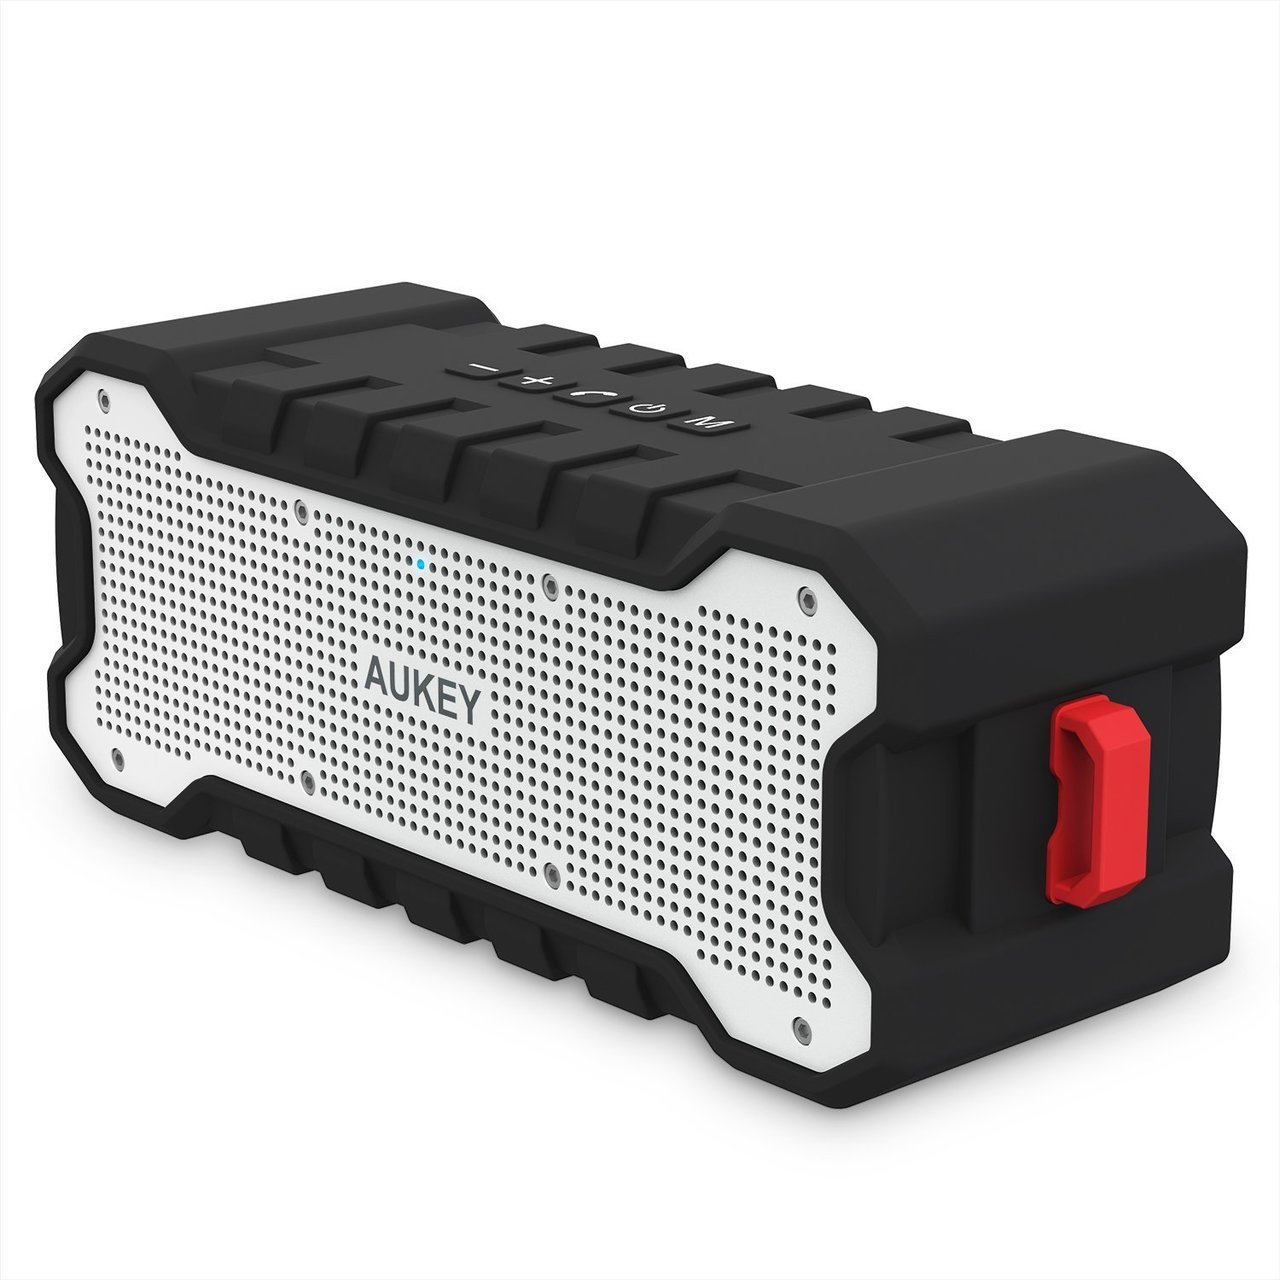 AUKEY Bluetooth Speaker with 30-Hour Playtime, Enhanced Bass, Water Resistant Wireless Speaker for iPhone, iPad, Samsung - SK-M12